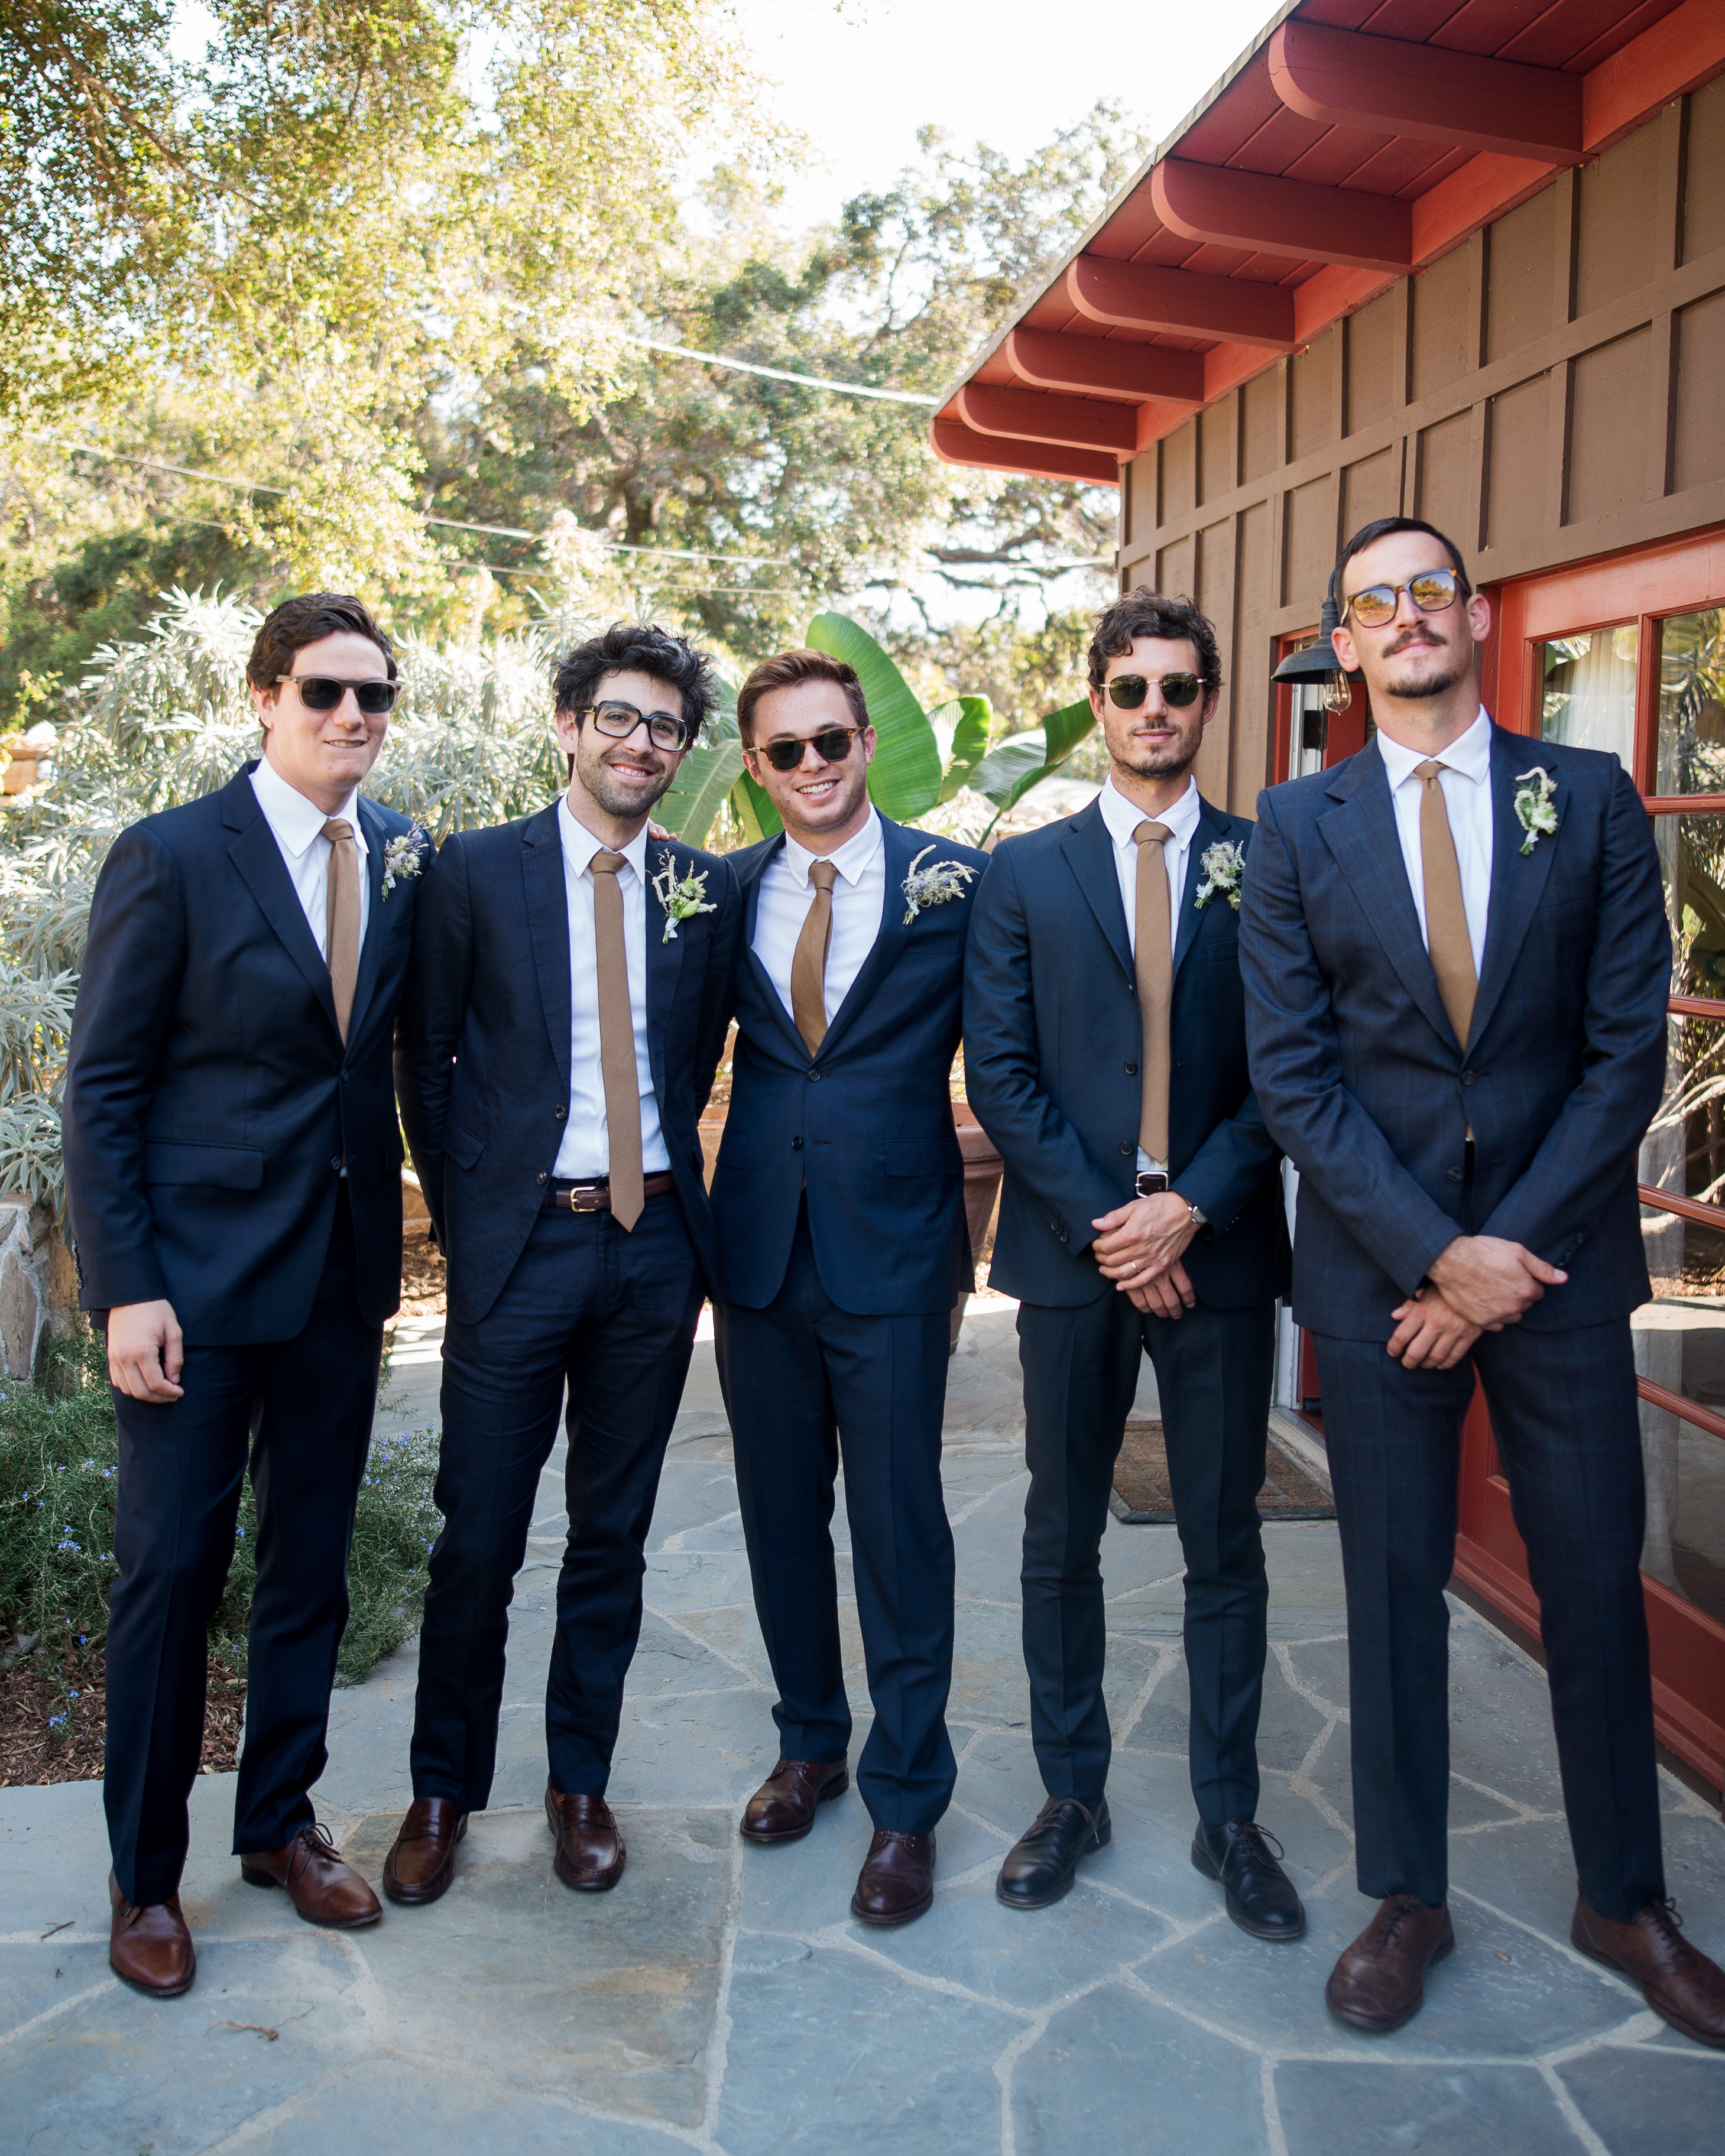 anika max wedding groomsmen wearing sunglasses